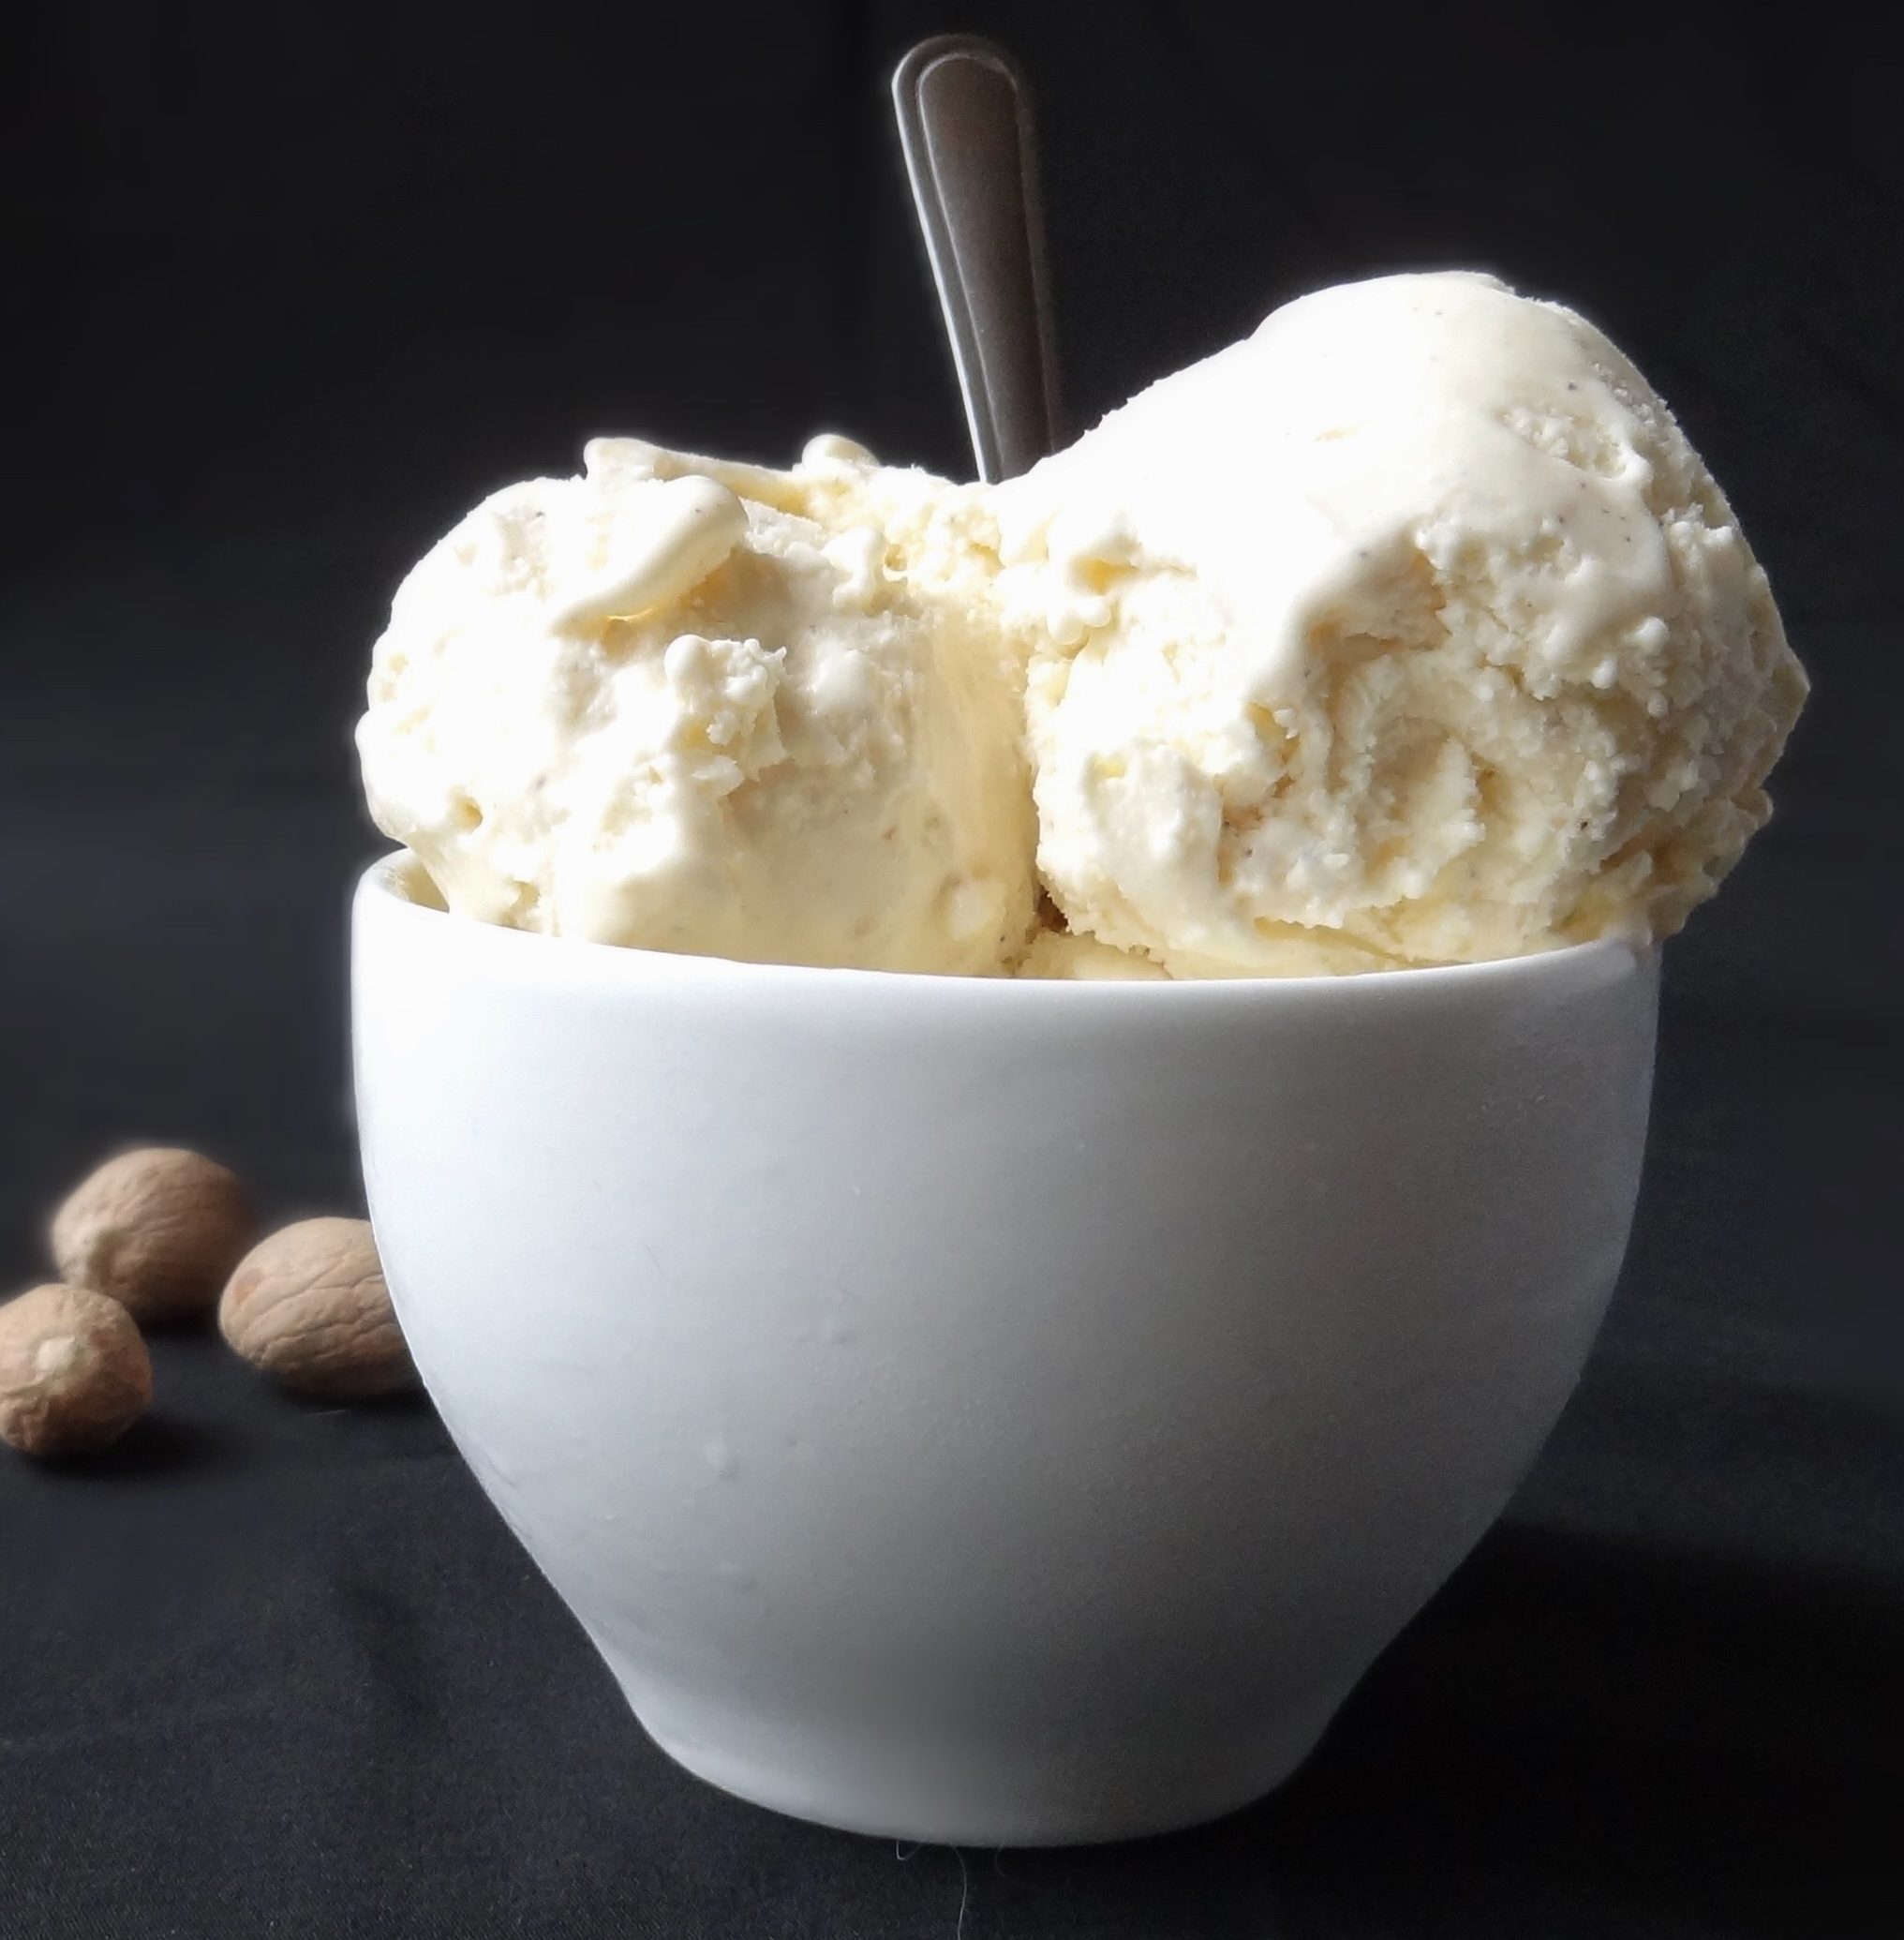 categories: Recipes , Spice , Christmas , Ice Cream and Sorbet